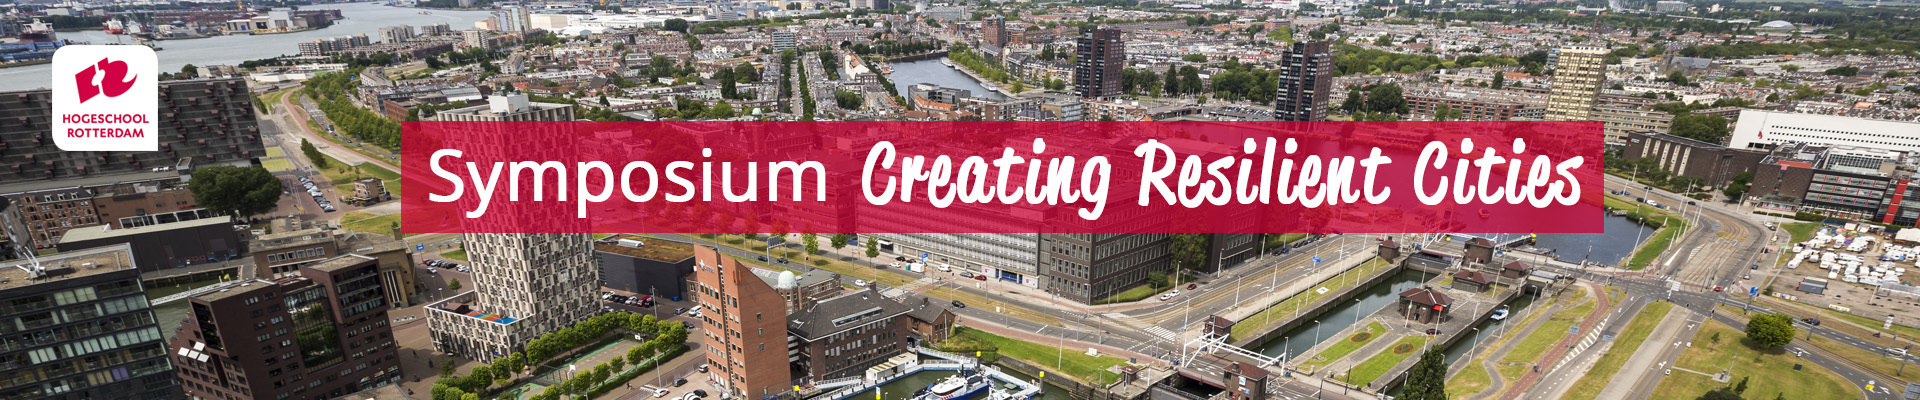 Symposium Creating Resilient Cities